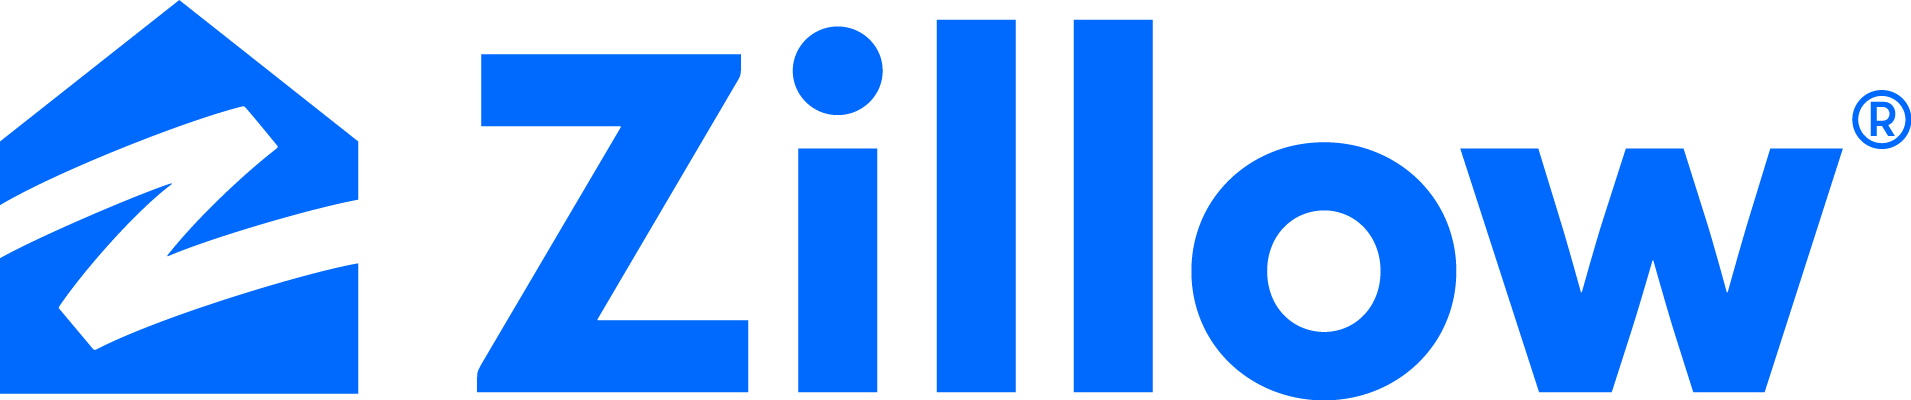 Zillow_Wordmark_Blue_RGB lrg